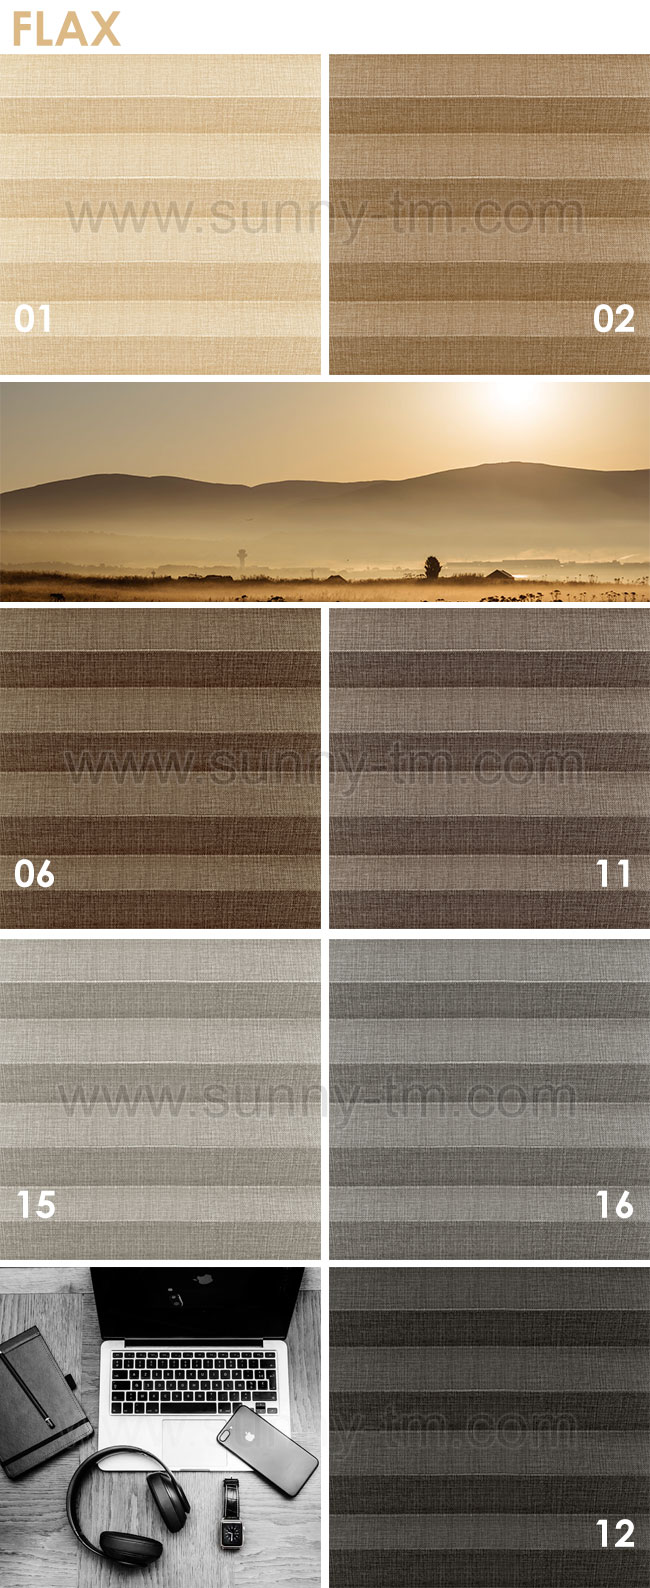 Flax fabric for Plisse blinds